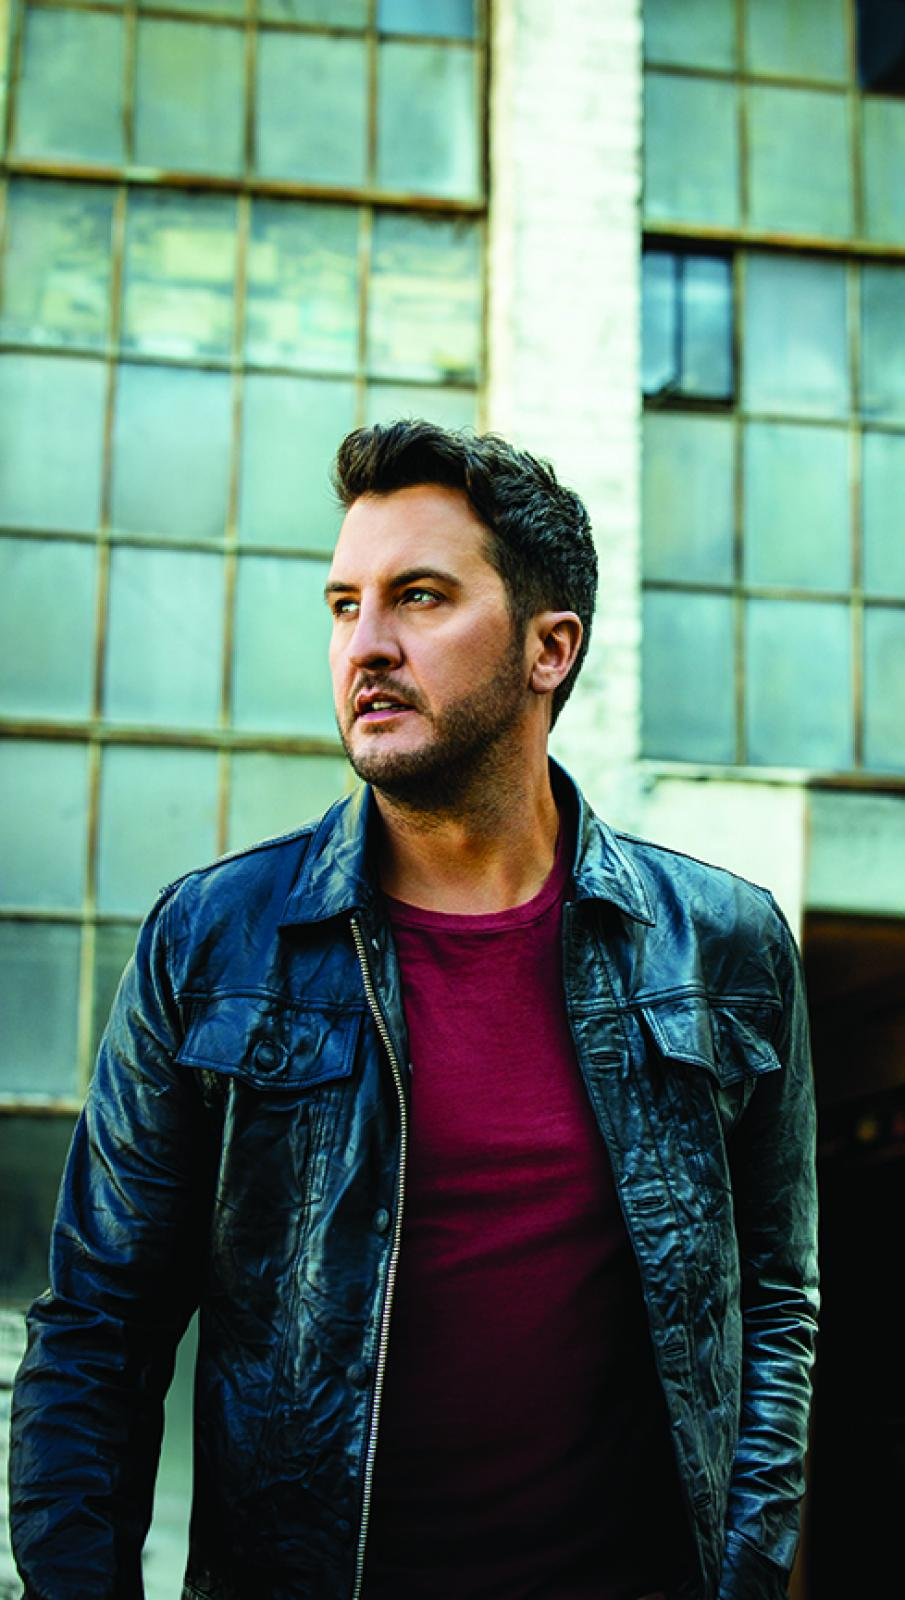 Luke Bryan to Perform This Saturday as part of Verizon's #PayItForwardLIVE Series during the 2020 NFL Draft